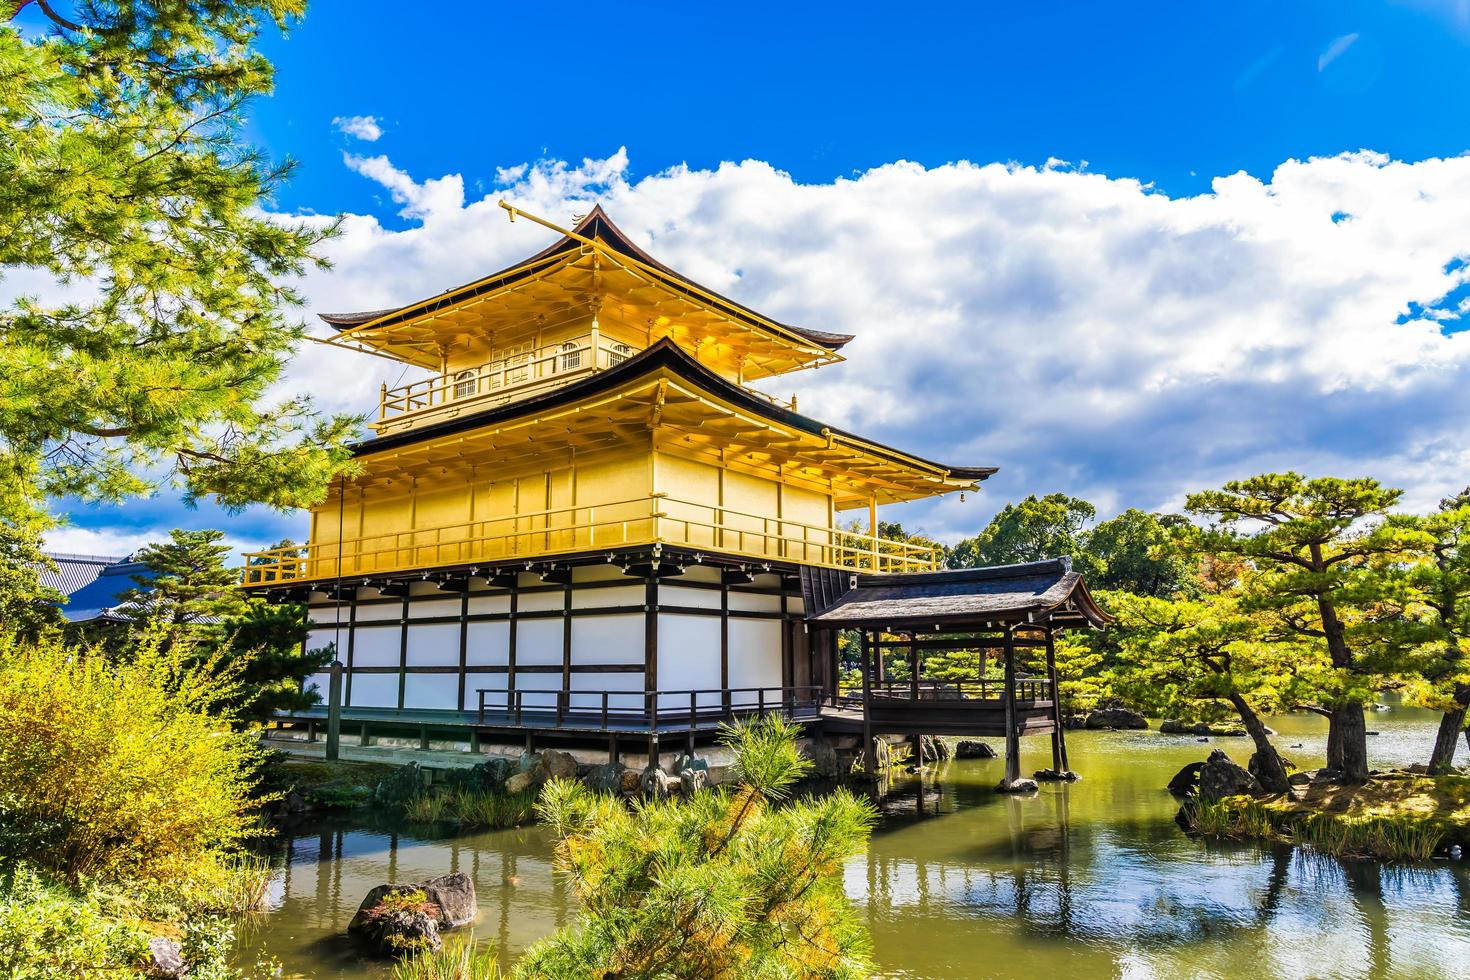 Kinkakuji temple or Golden Pavillion in Kyoto, Japan photo